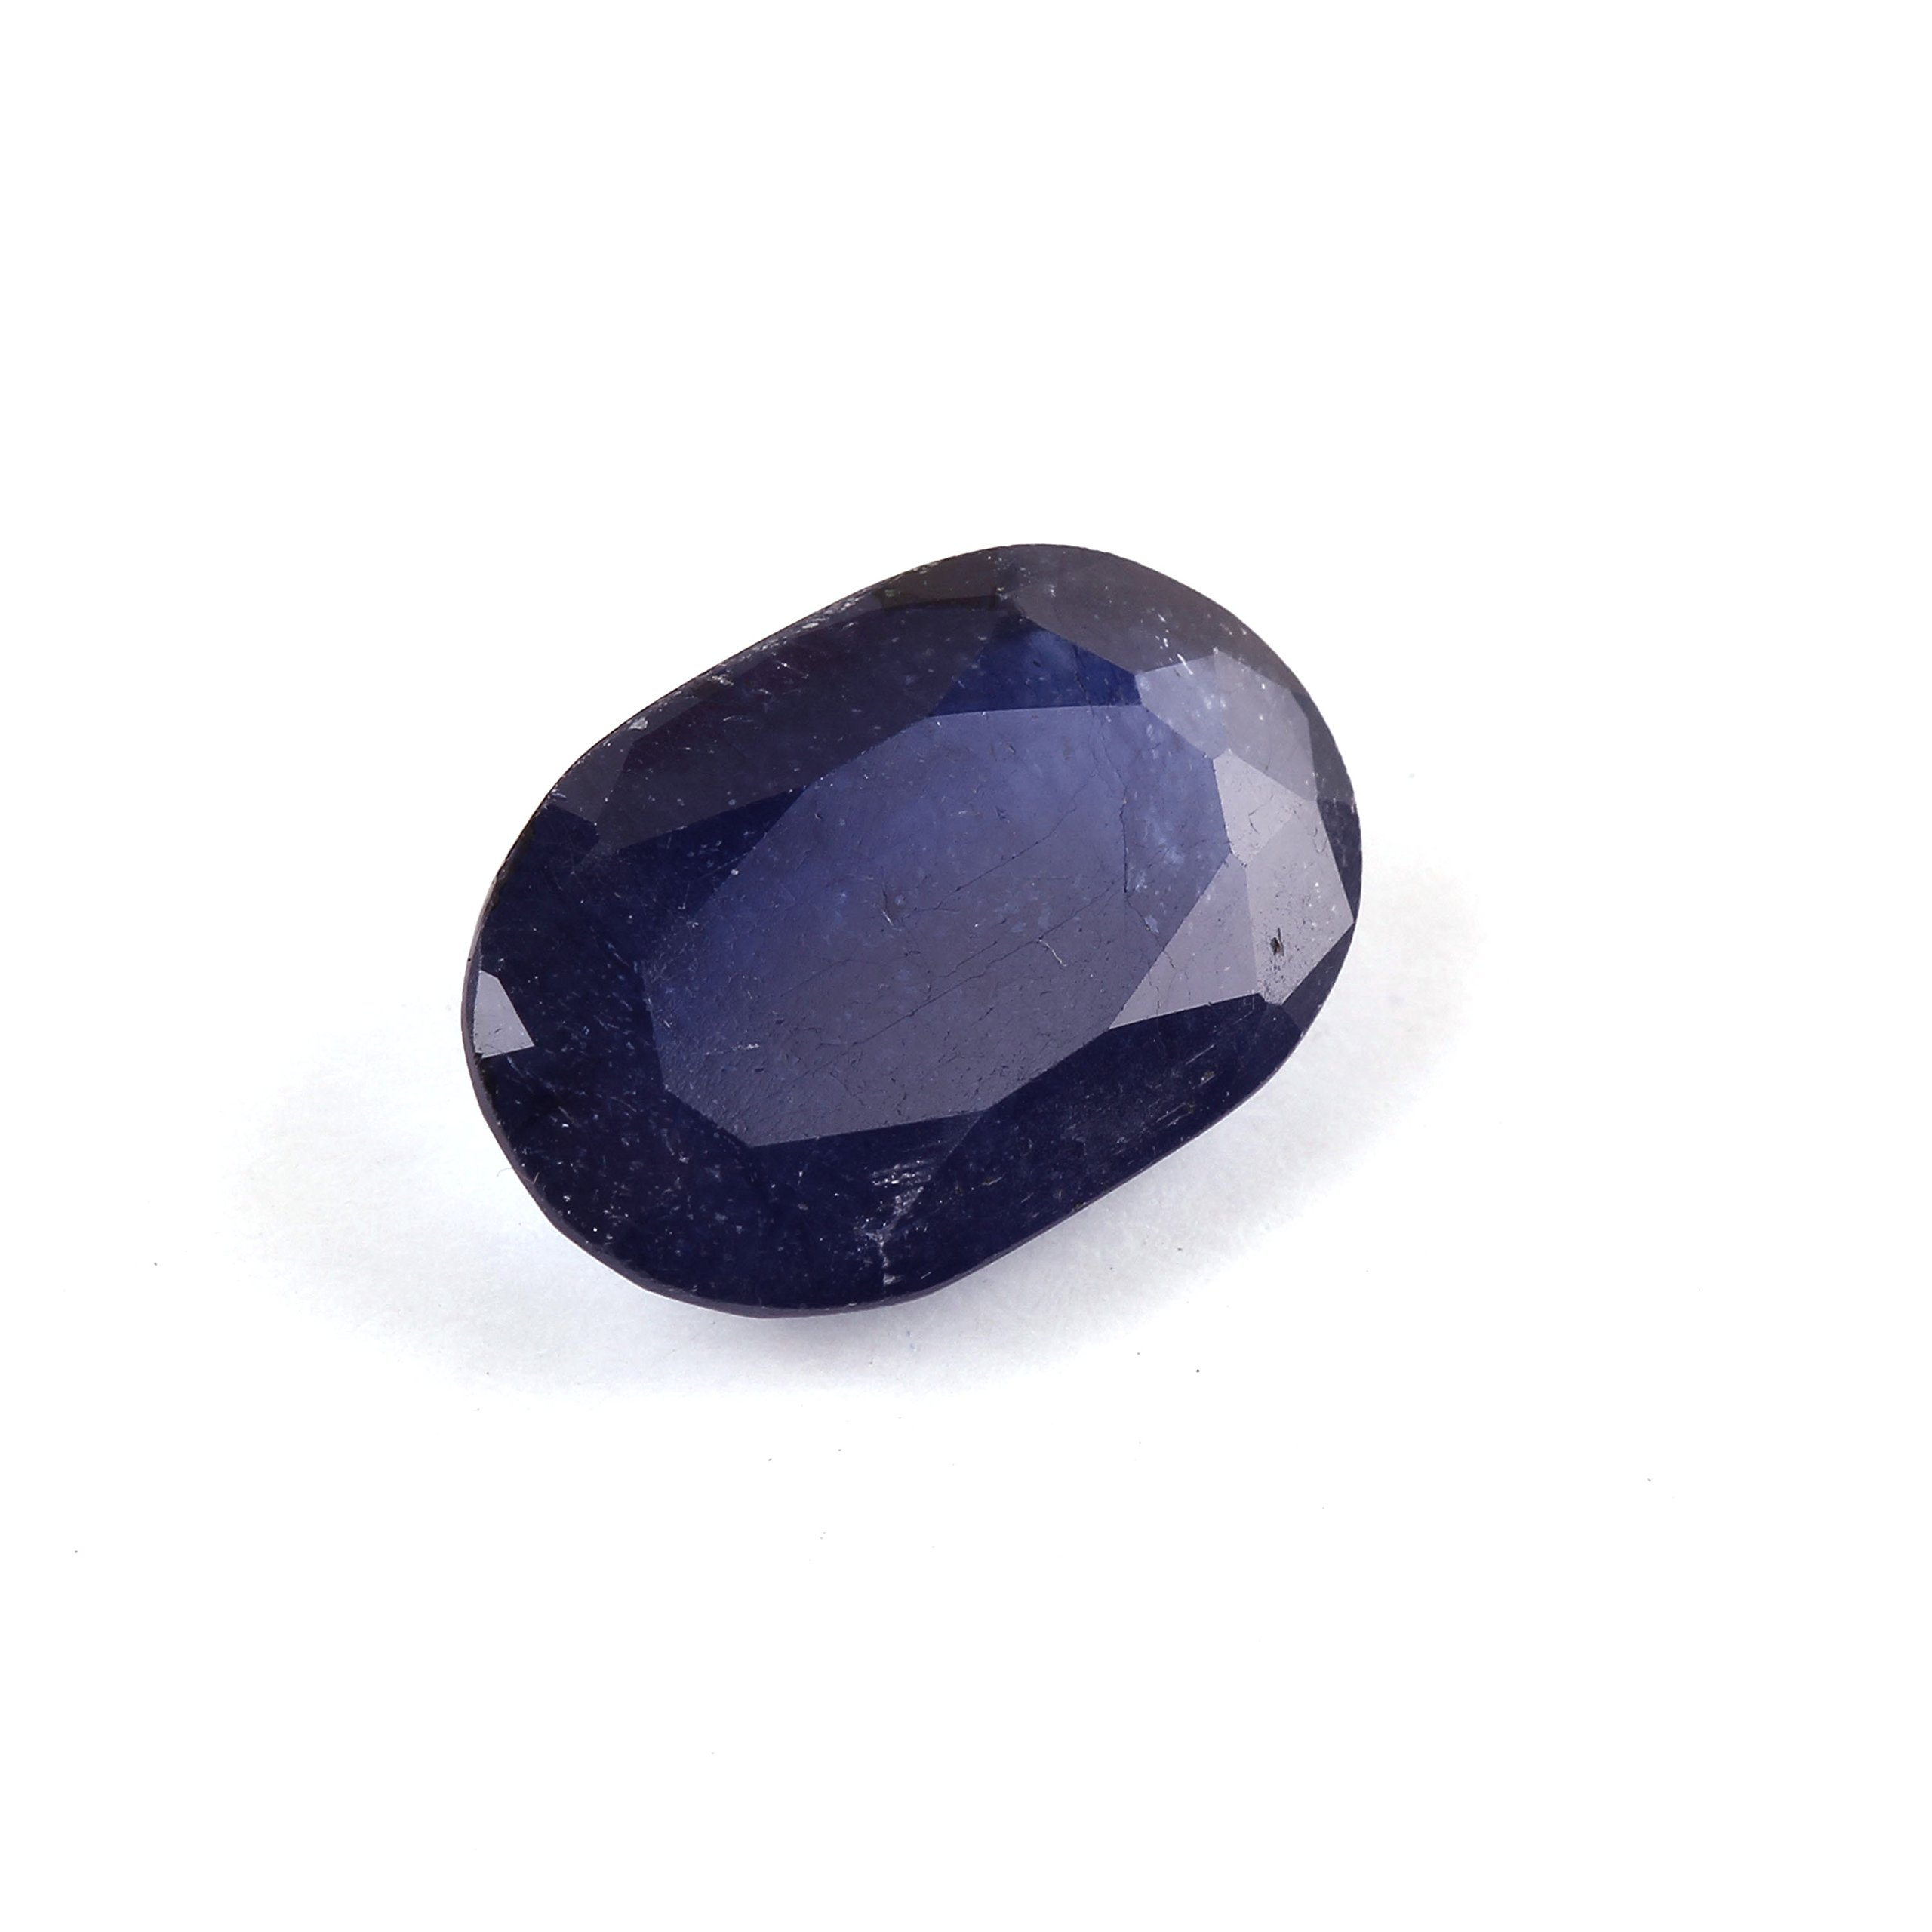 Neerupam collection Created/Treated Glass filled Blue sapphire 8.75 carat faceted oval Gemstone for jewelry making Astrological purpose